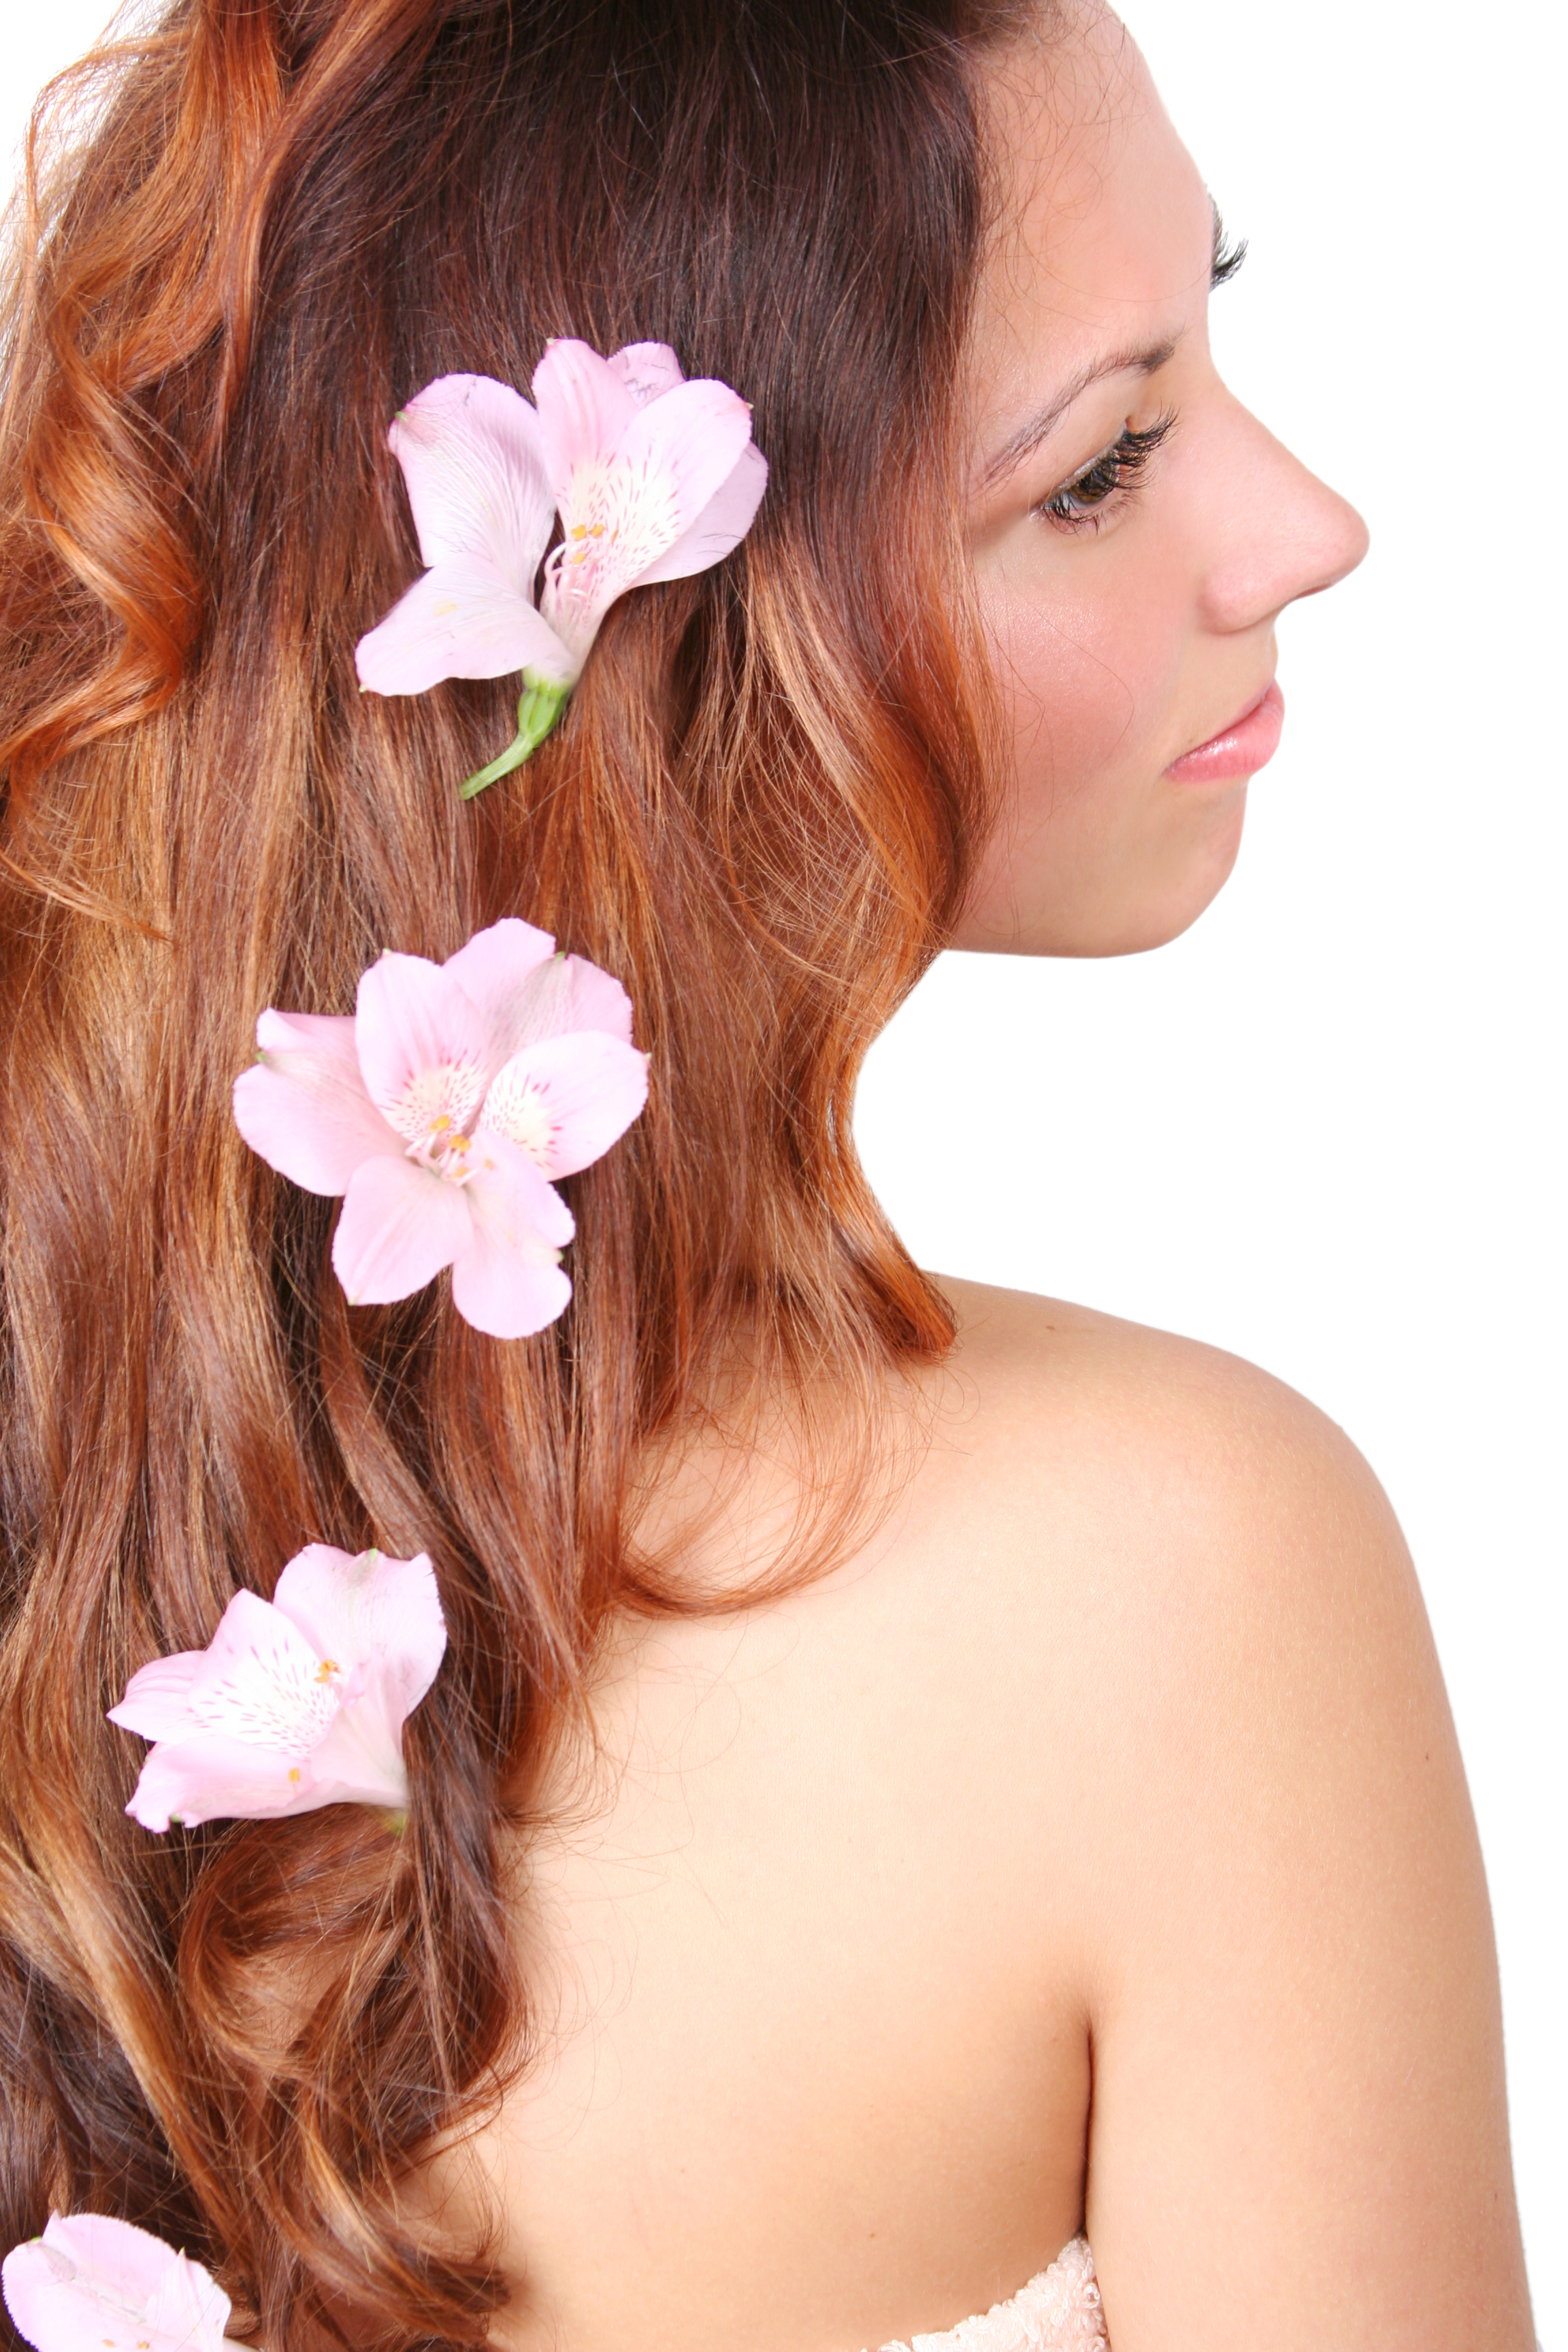 Pretty women with red hair wearing pretty flowers along down her hair.